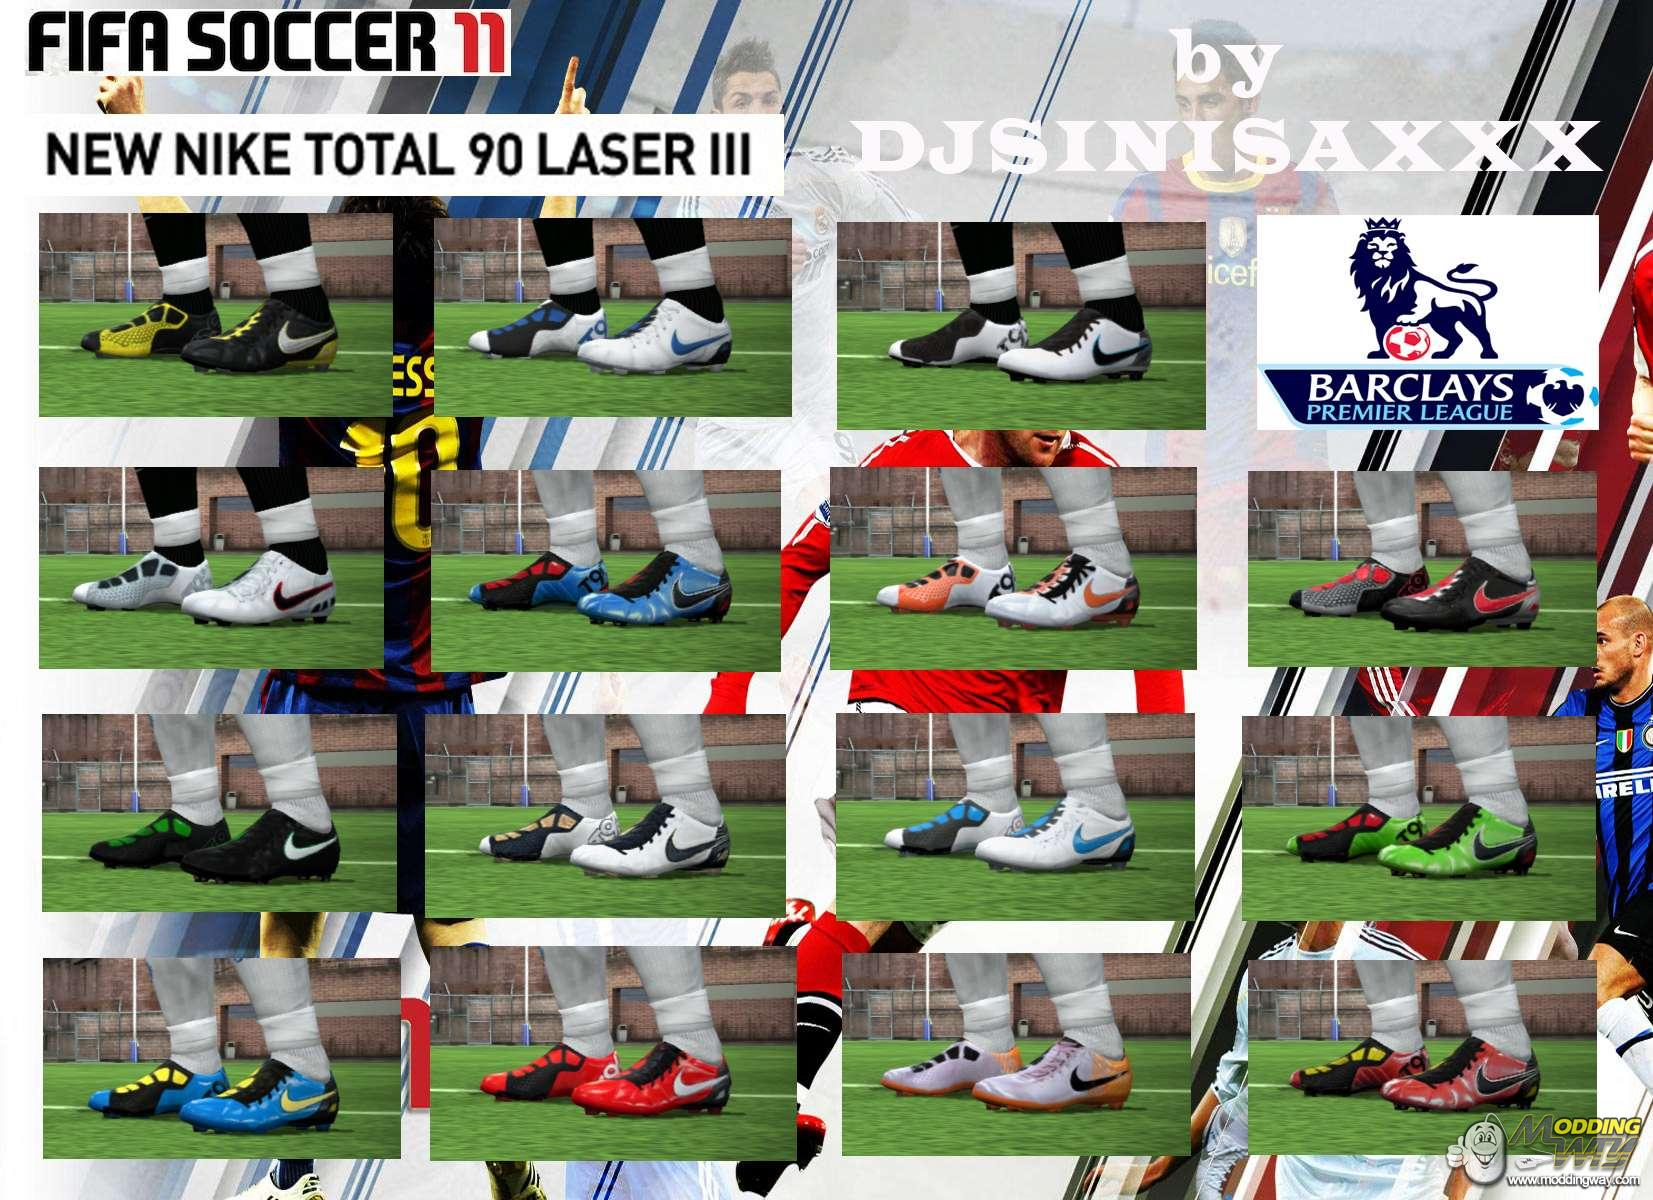 Mod boots fifa 11 when will fifa 11 price drop